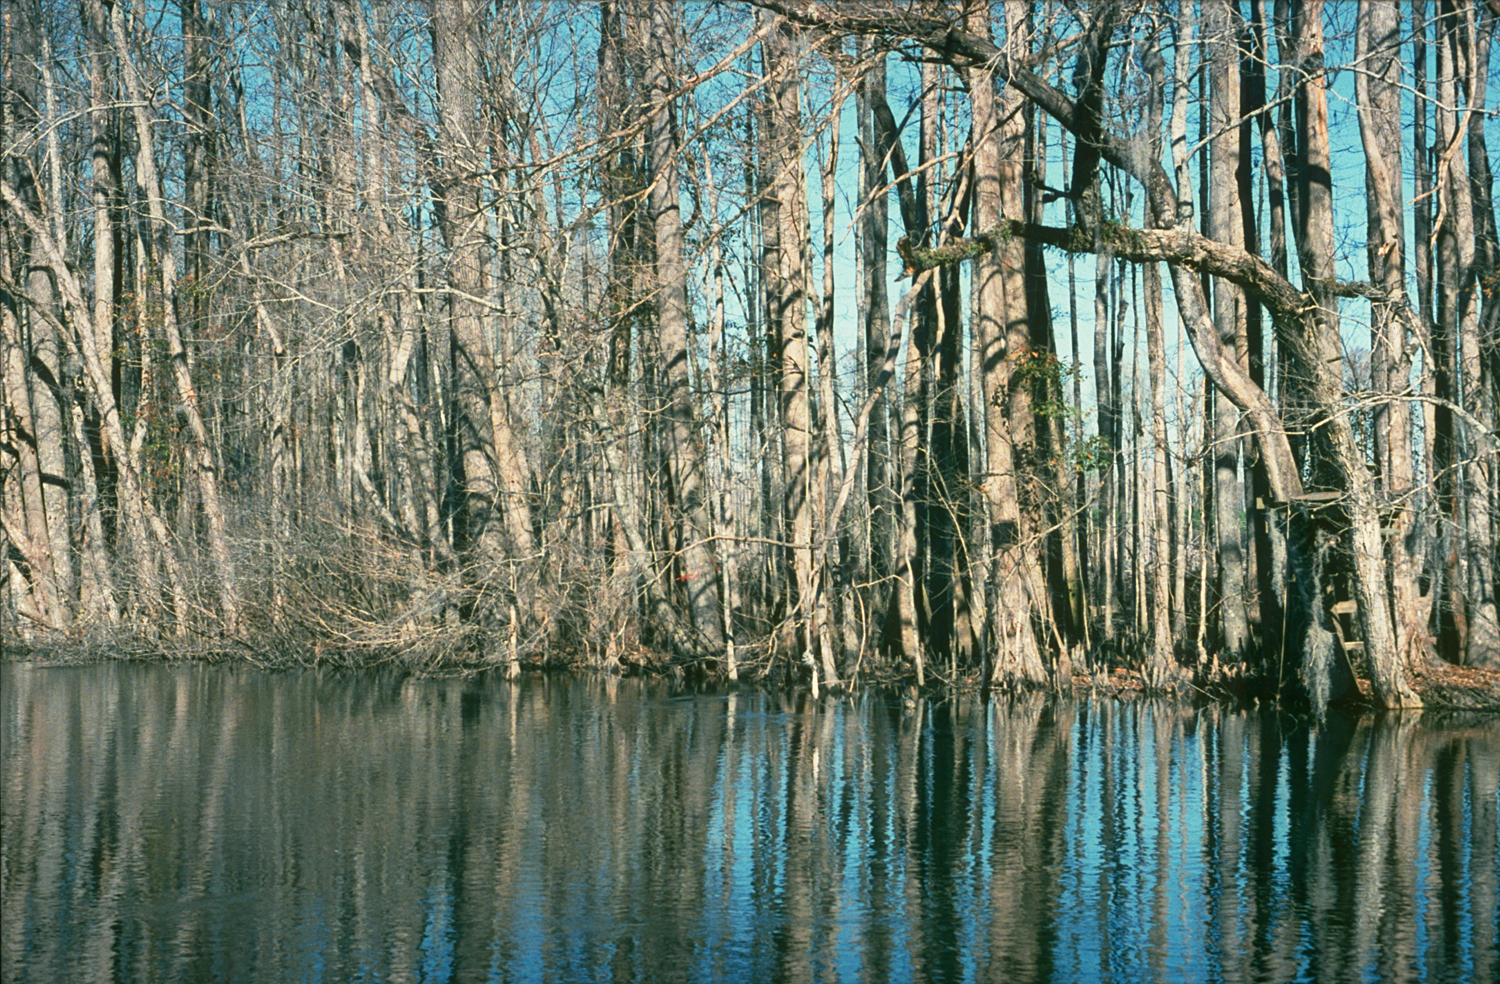 Photo: Trees in swamp.